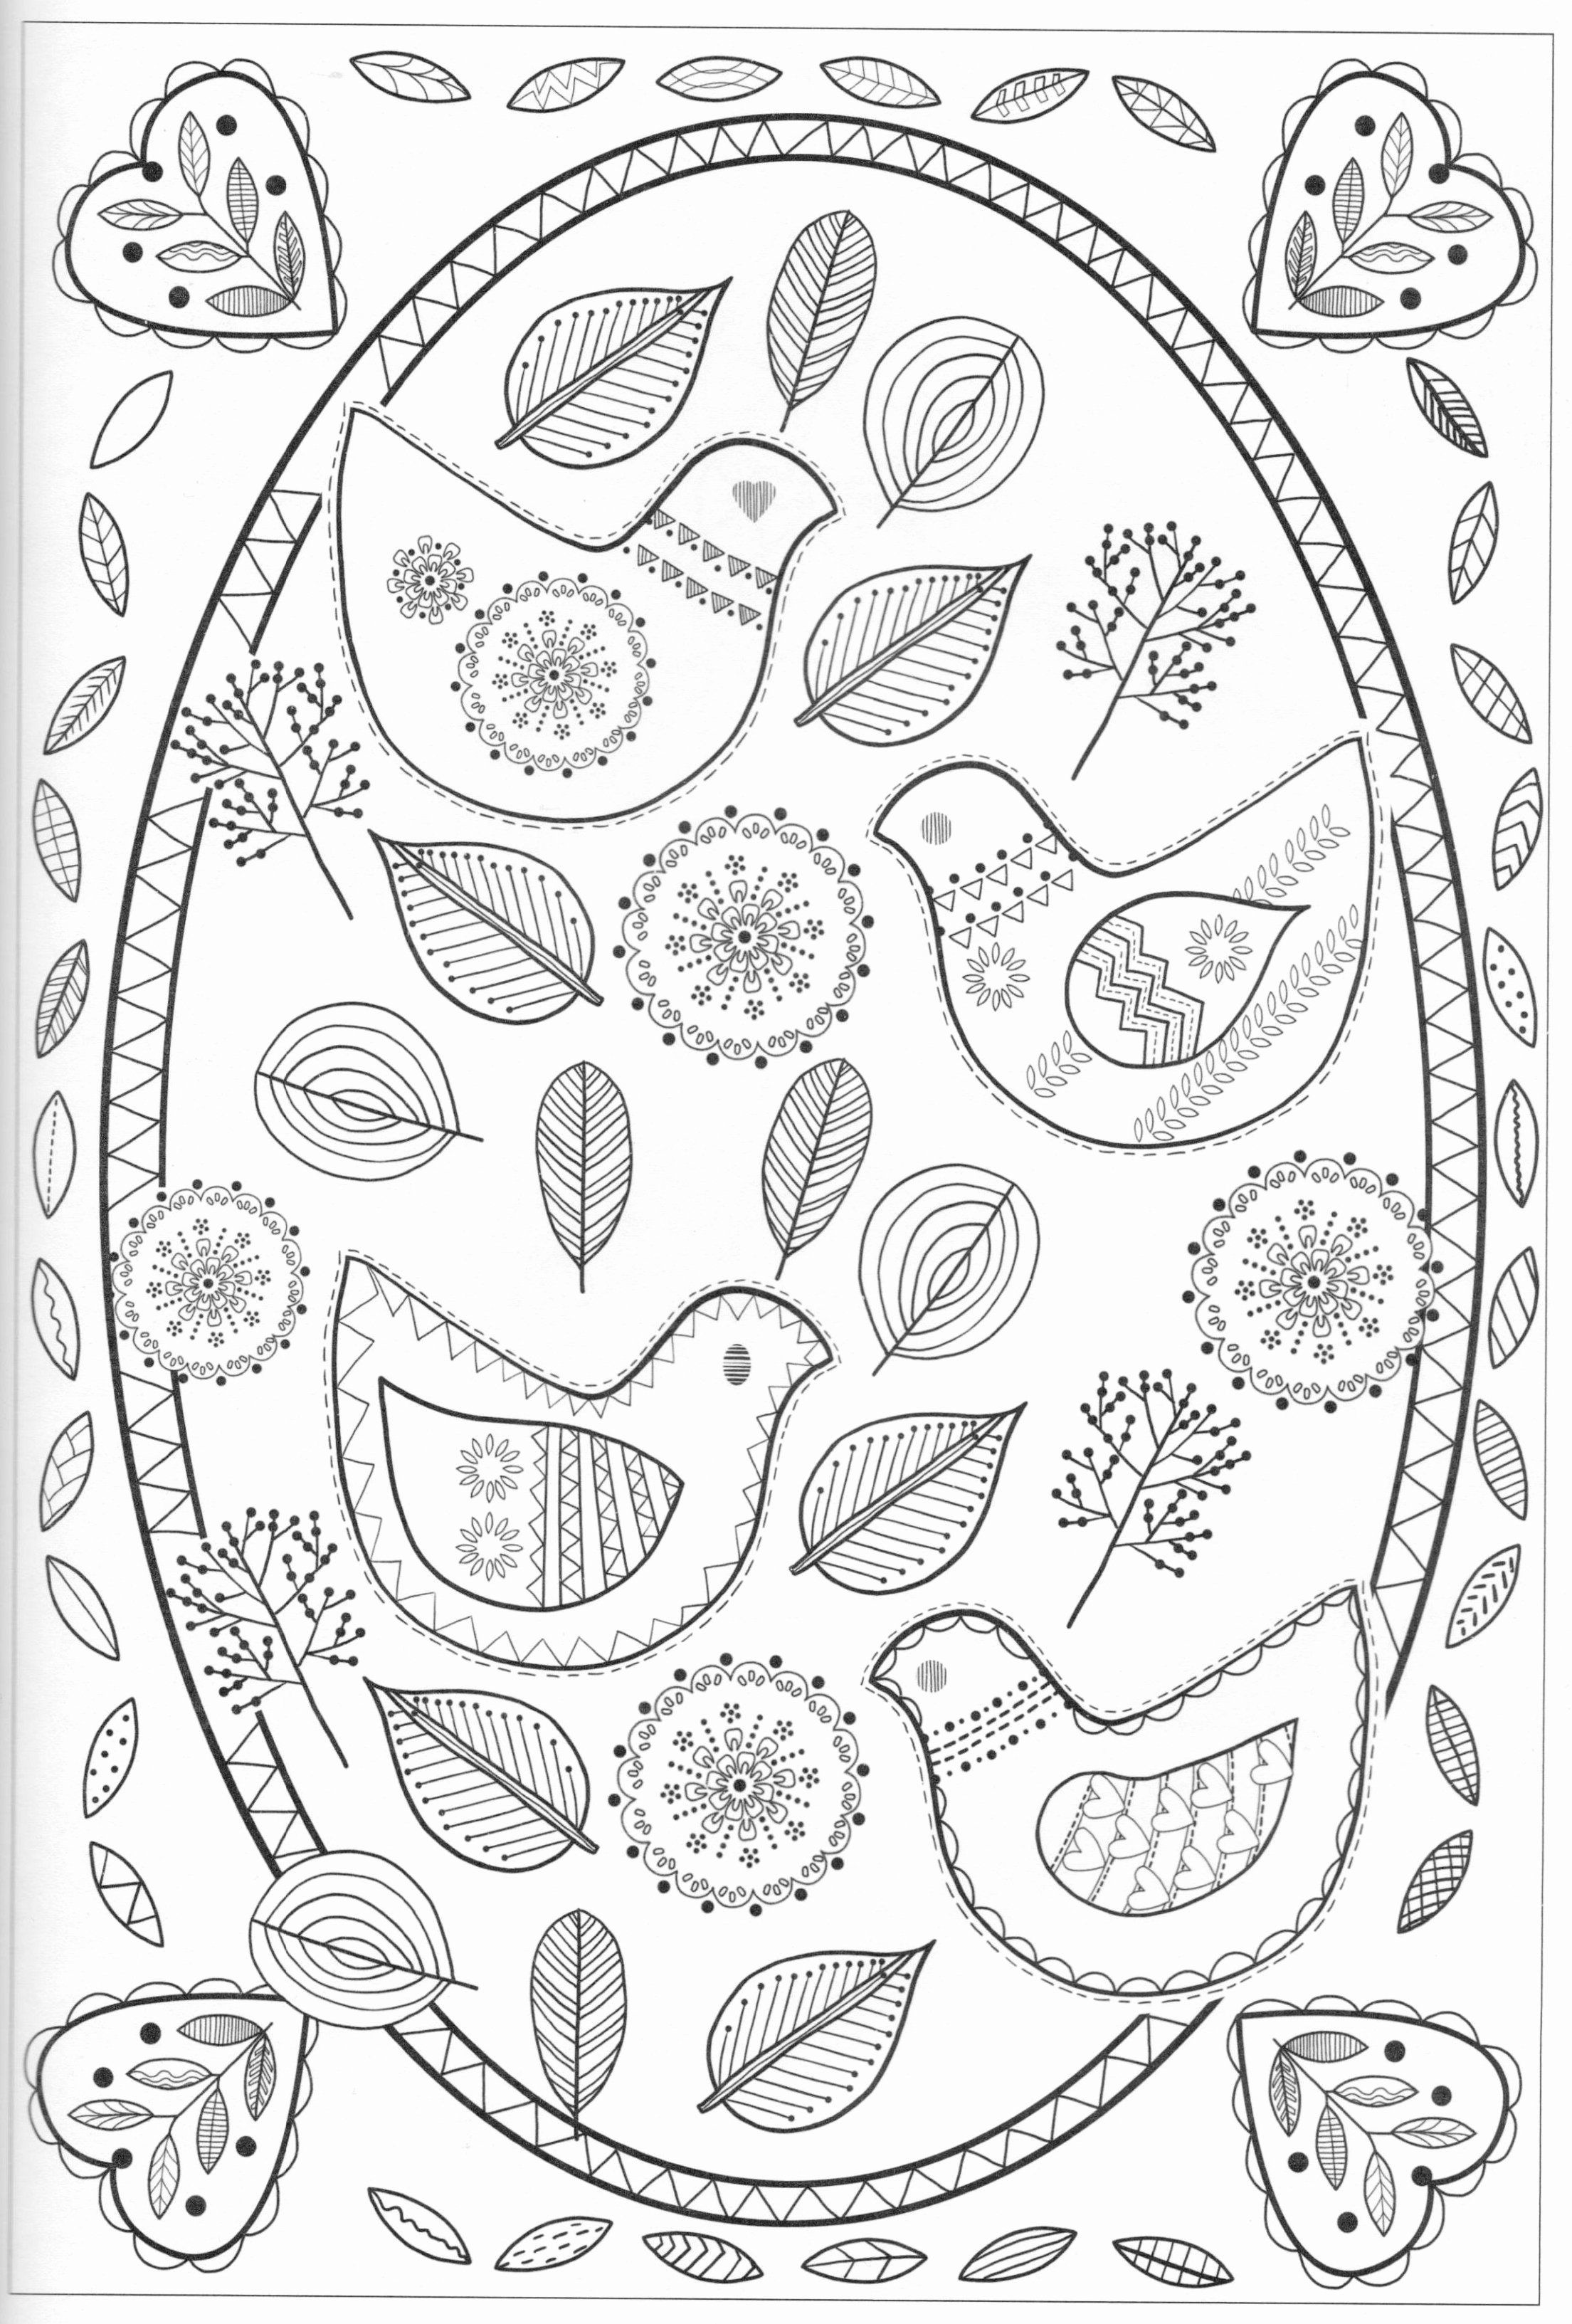 How To Design Coloring Books Inspirational Nature Coloring Pages Love Coloring Pages Designs Coloring Books Bird Coloring Pages